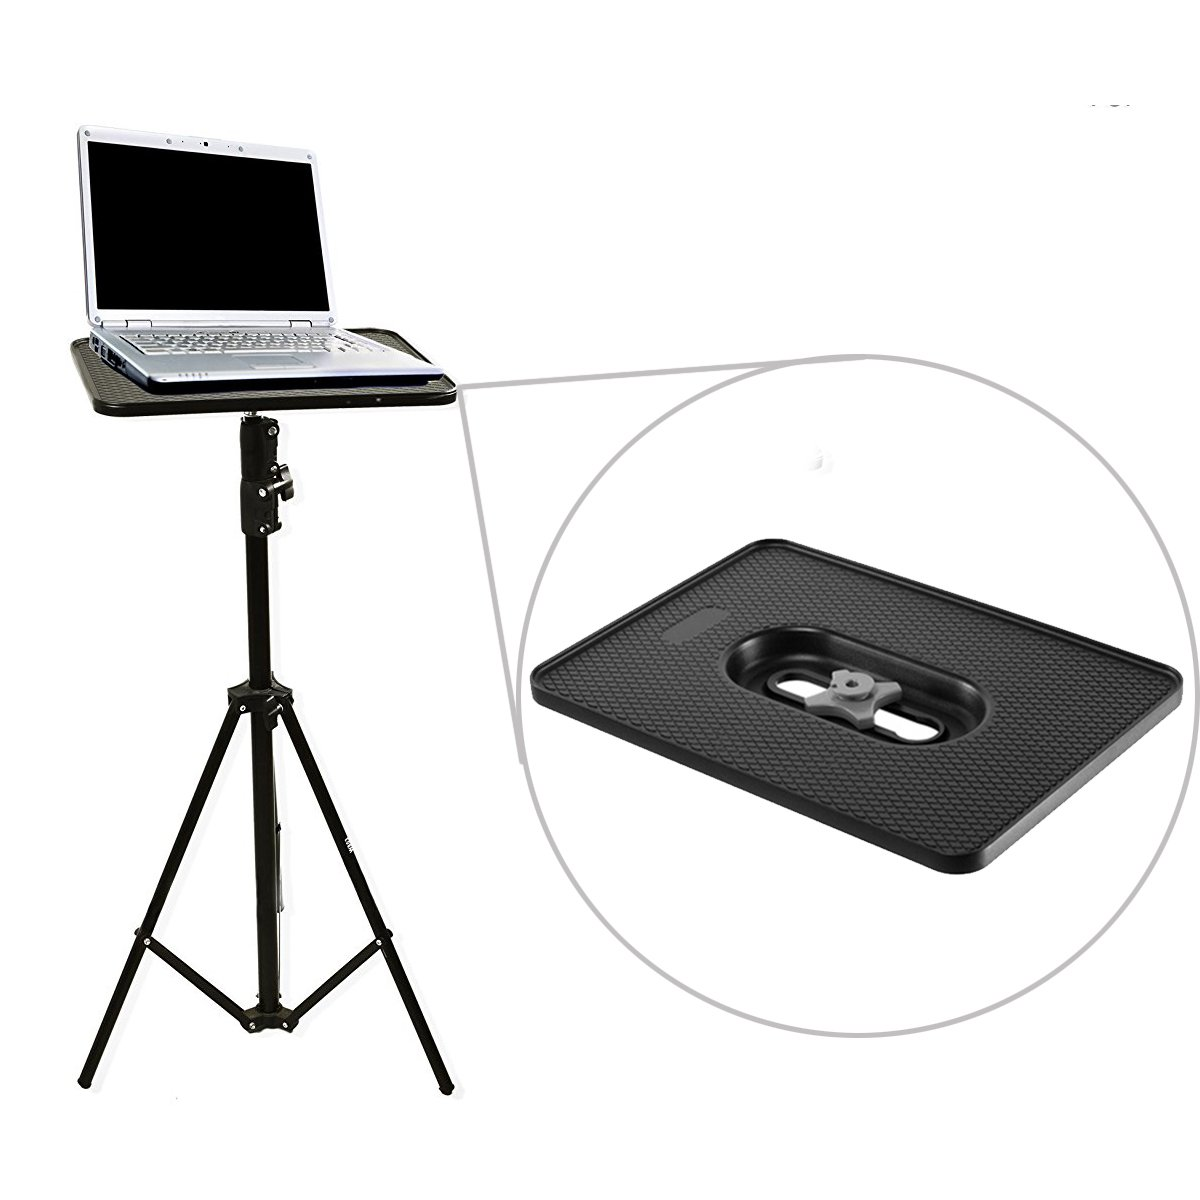 Selens Universal Tripod Laptop Computer Tray Holder Platform for Small Monitors/Projectors/Tablets, Compatible with 1/4 inch 3/8 inch Screw Light Stand, Camera Tripod by Selens